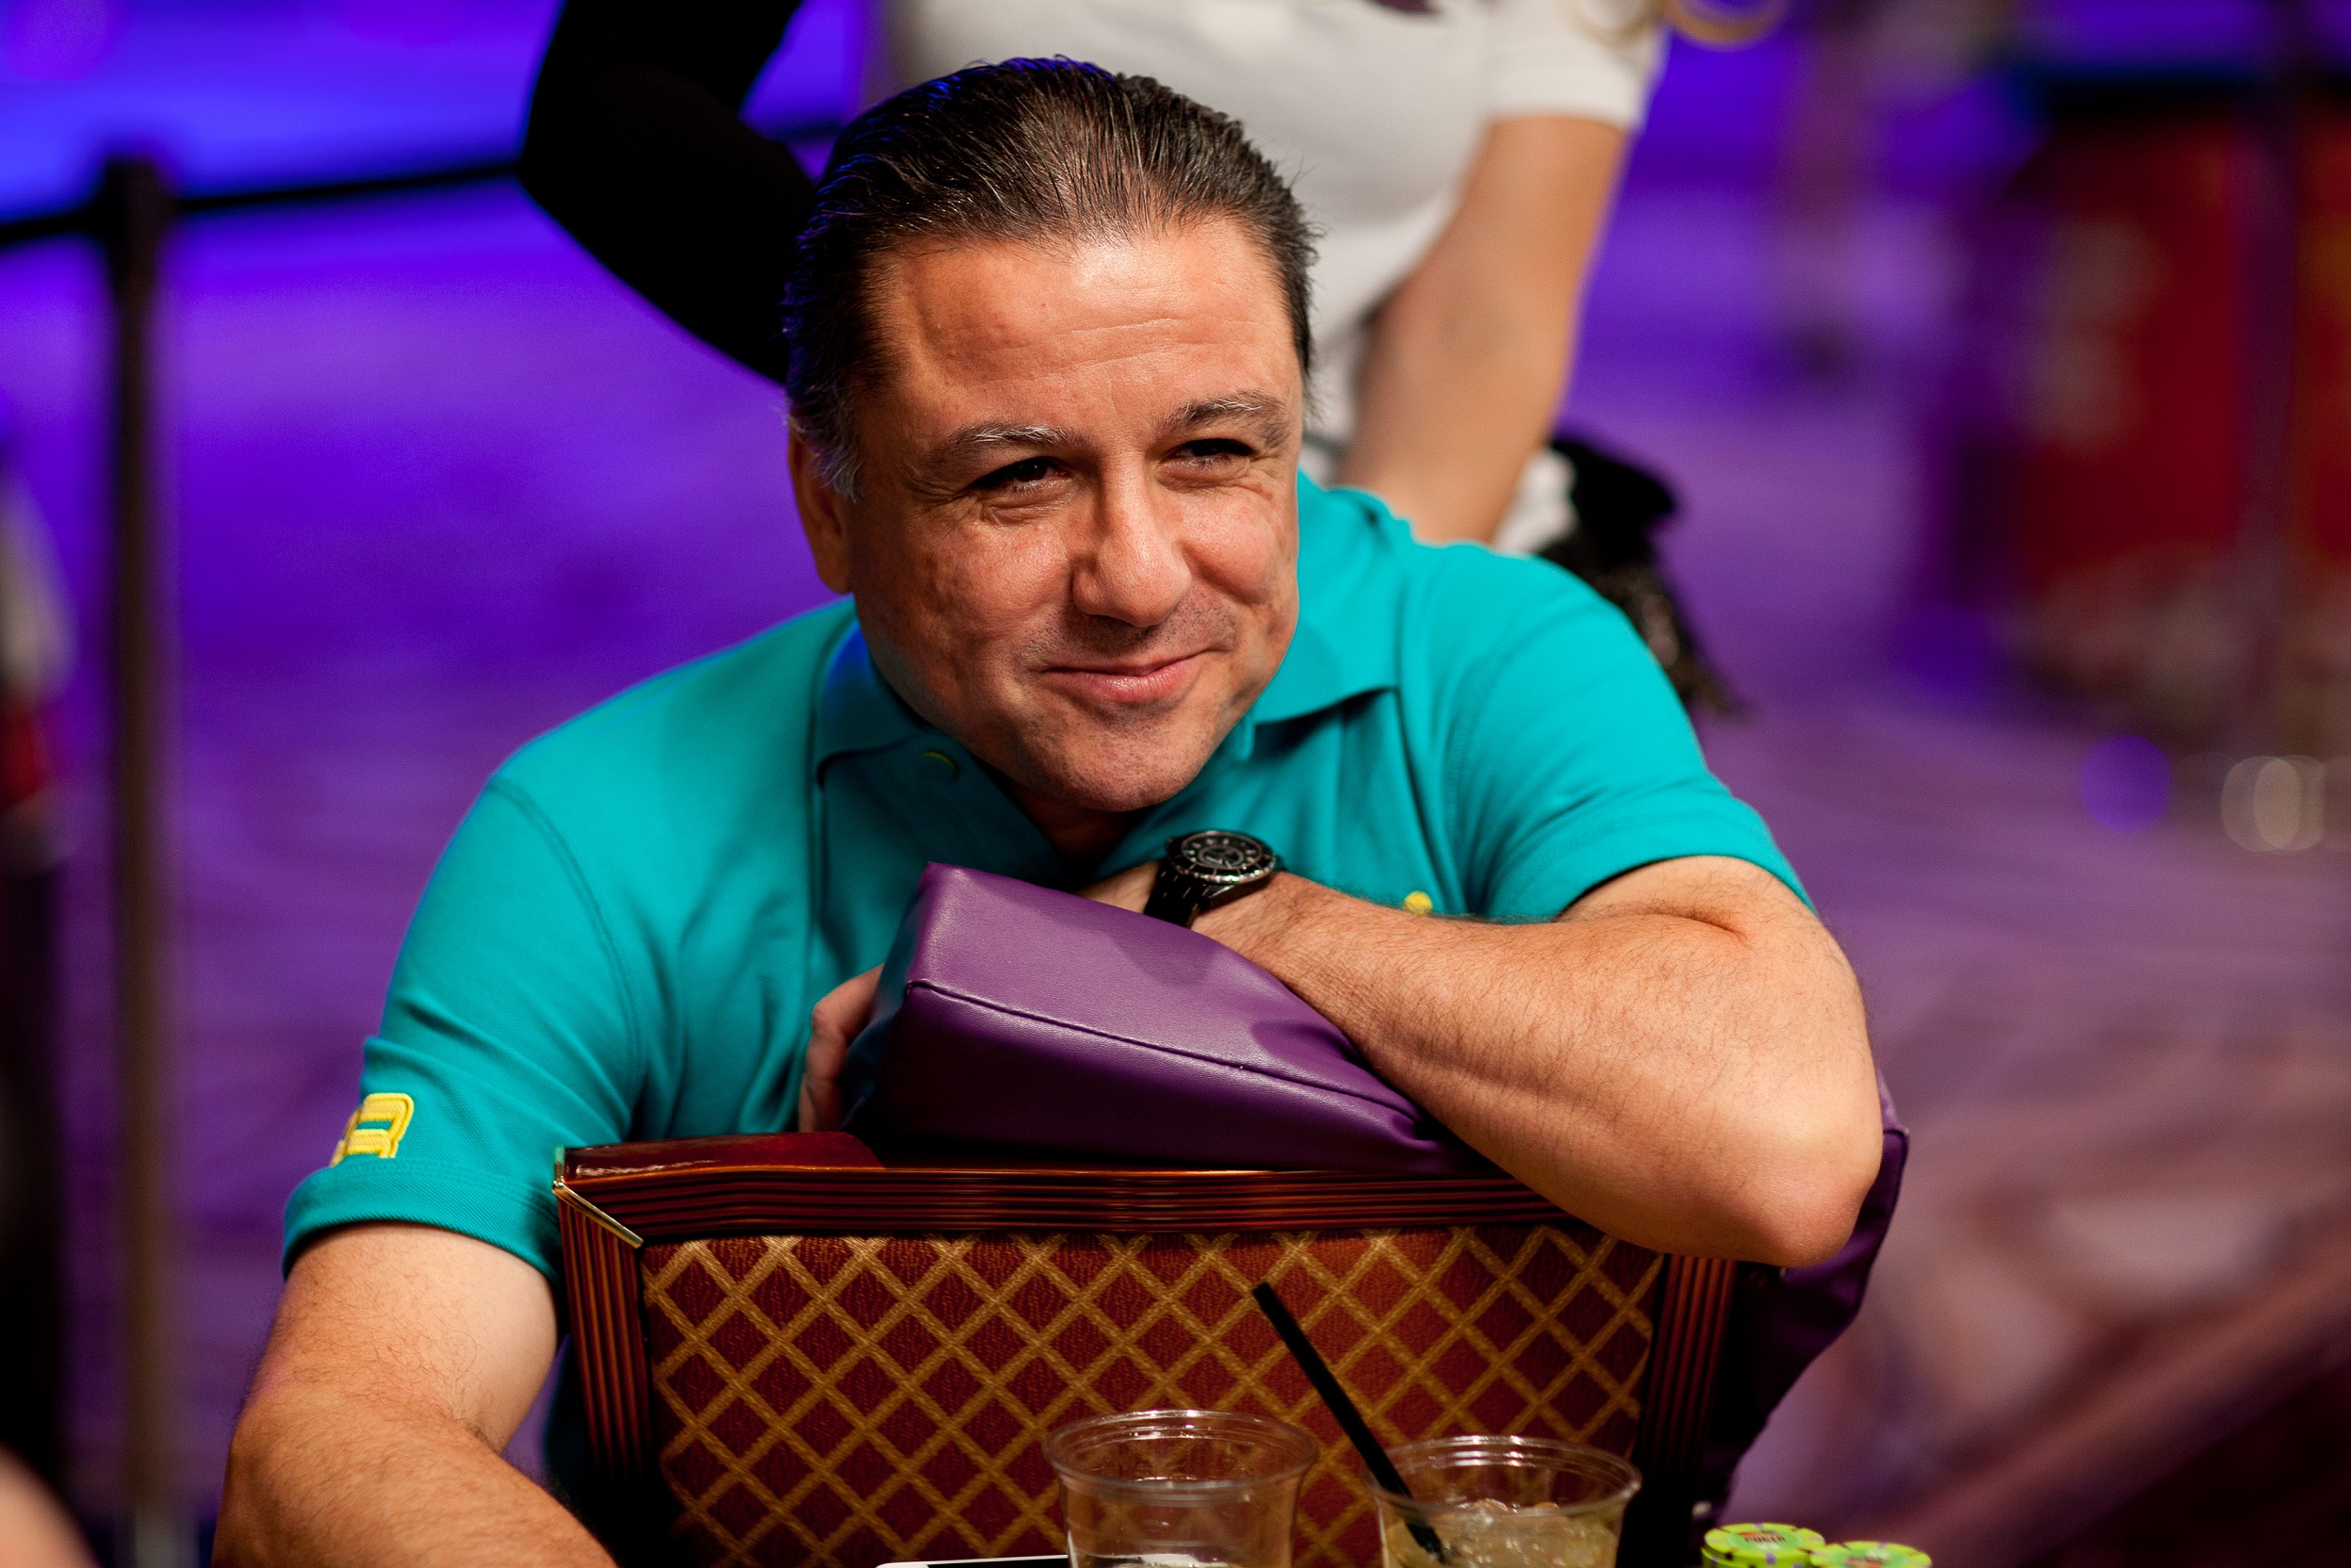 Eli Elezra: Degenerate Gambler with Big Debts